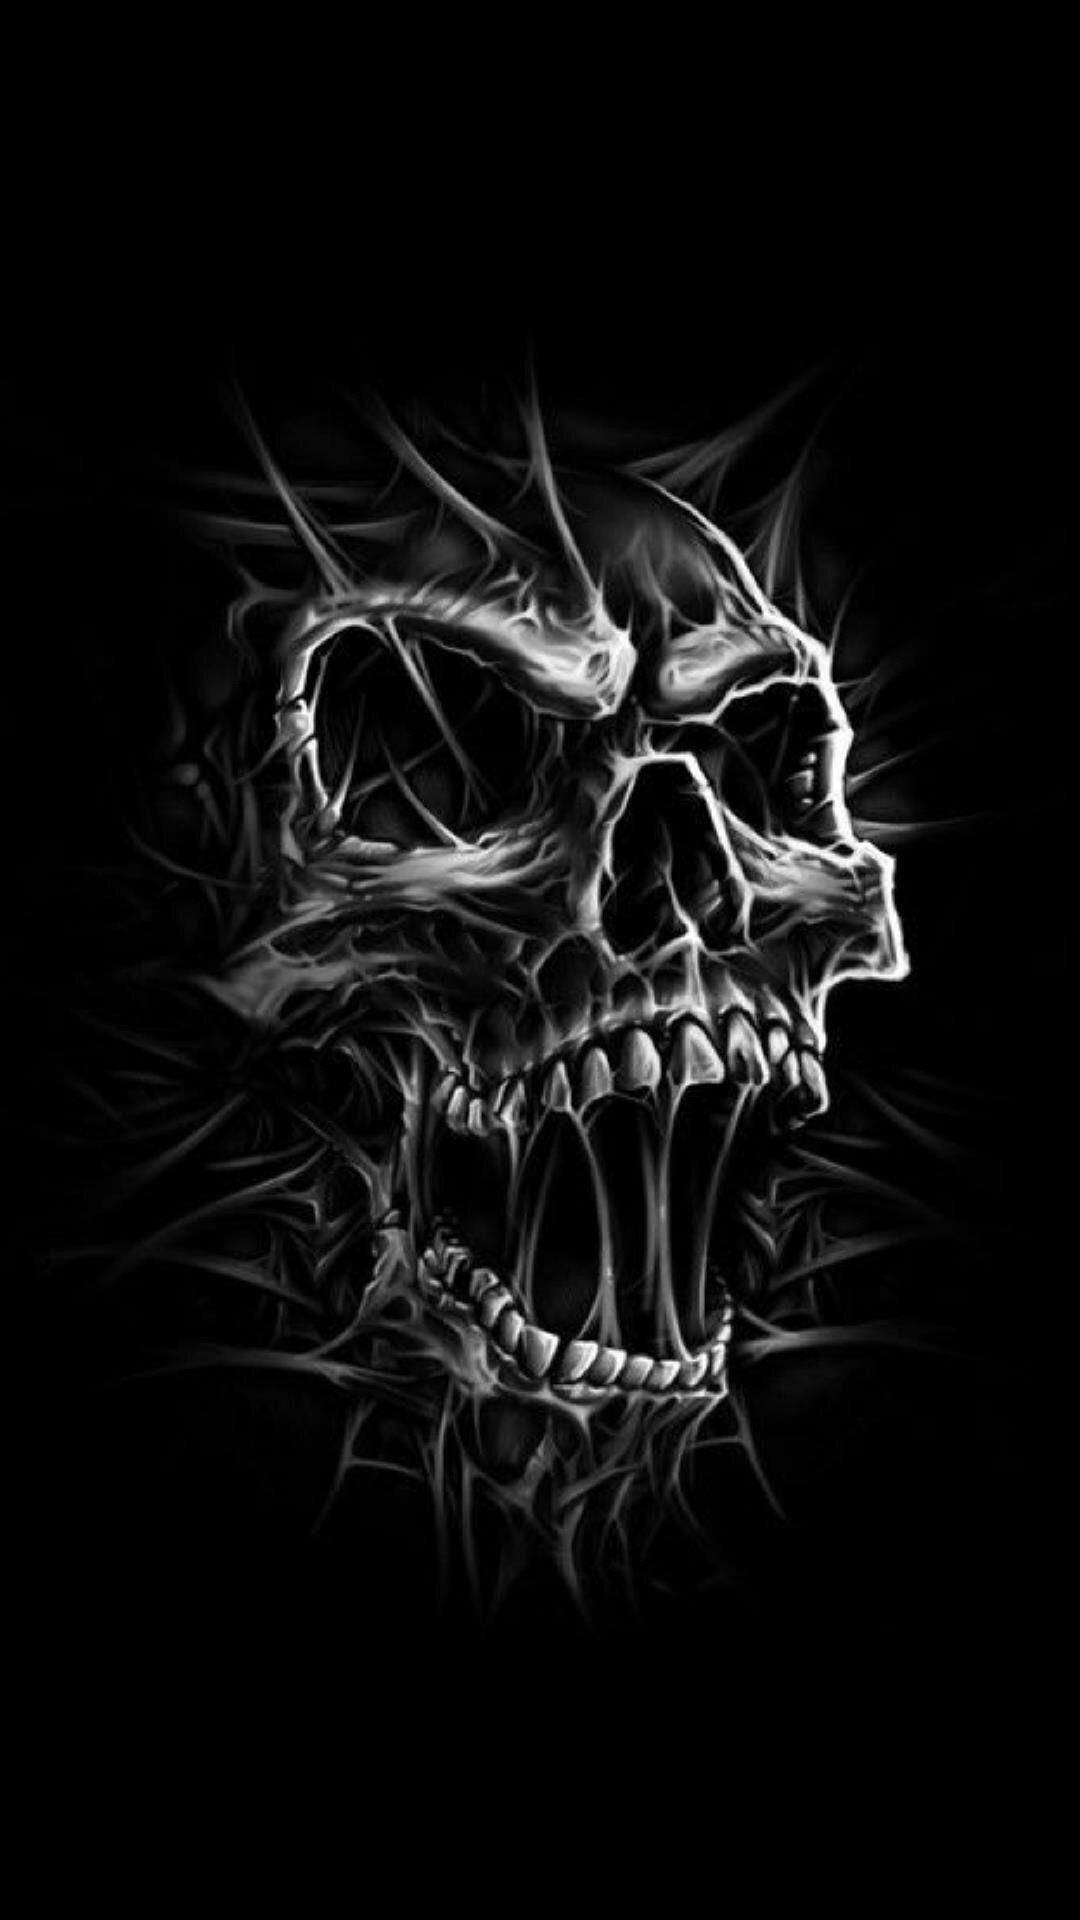 Dallas Cowboys Live Wallpaper Iphone Sons Of Anarchy Reaper Wallpaper 67 Images